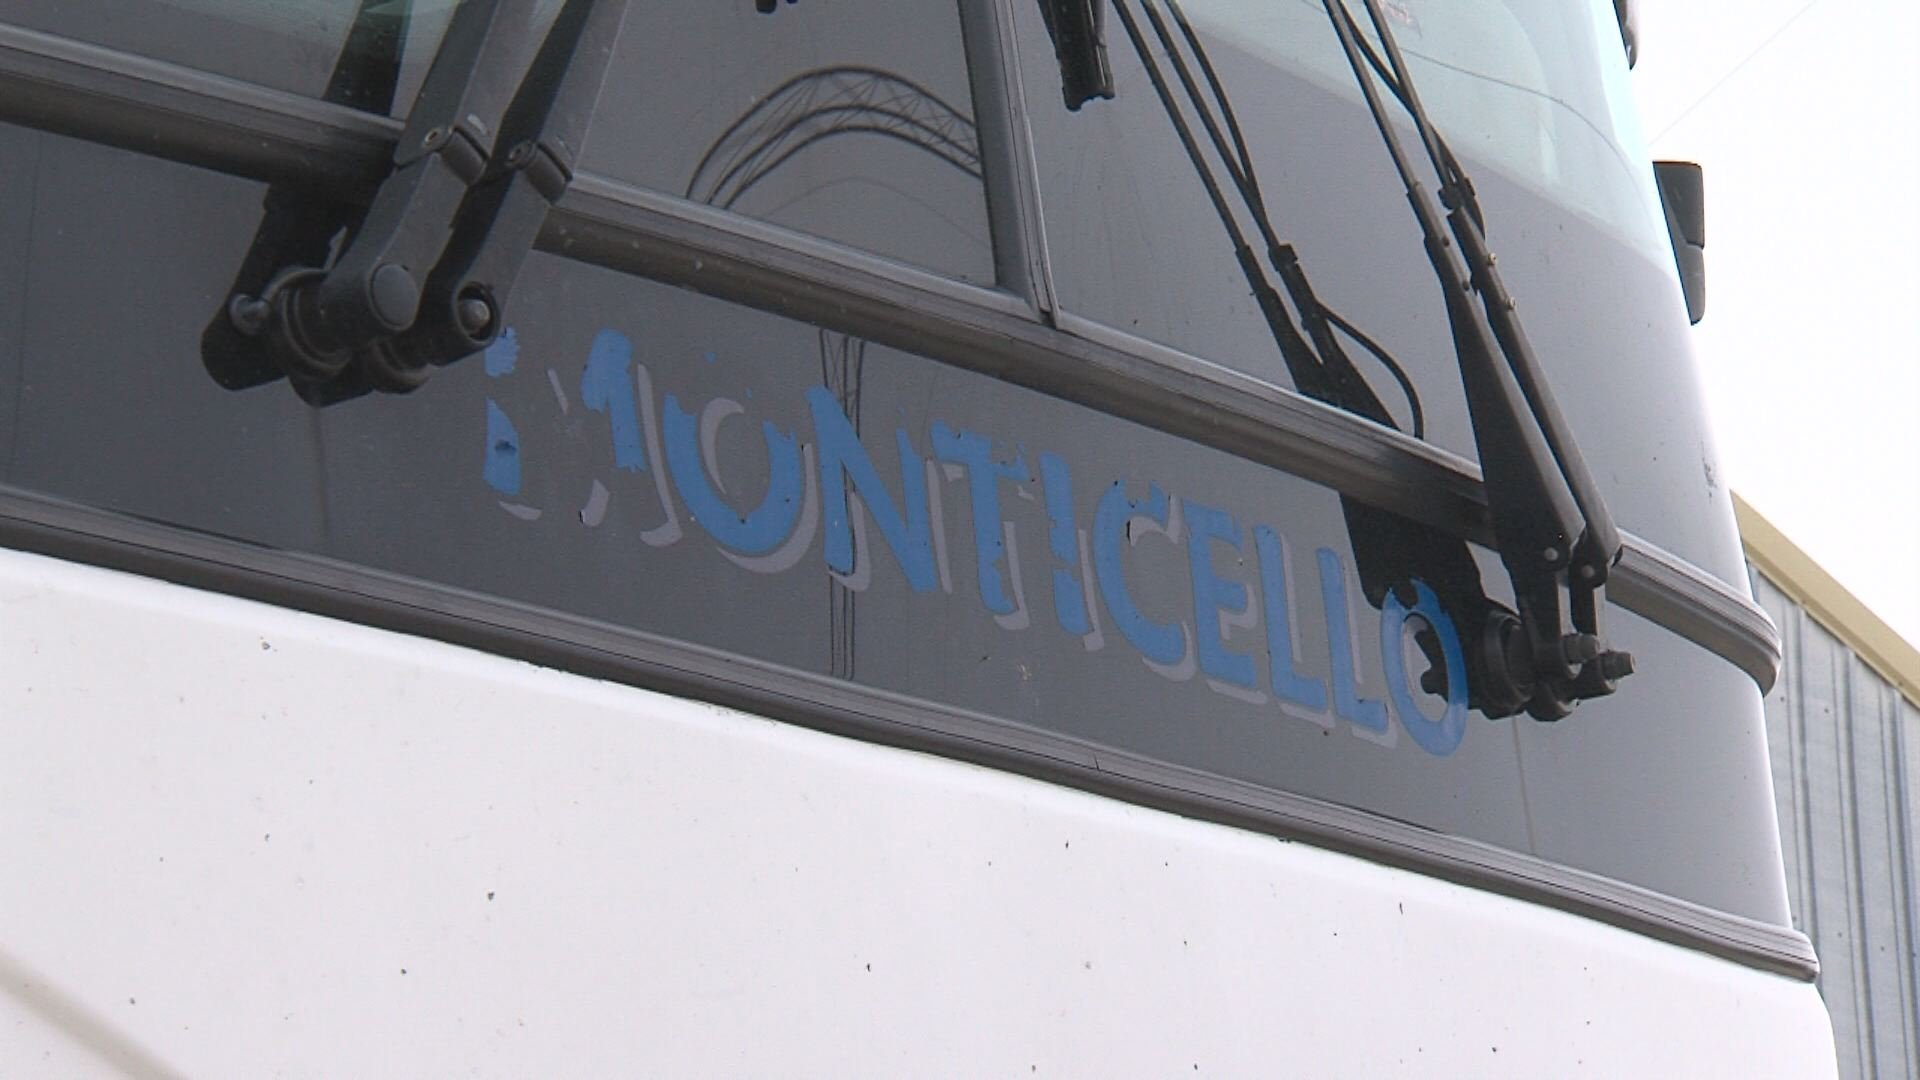 monticello bus service closes  wandtvcom, newscenter17  ~ Wand Tv Weather School Closings